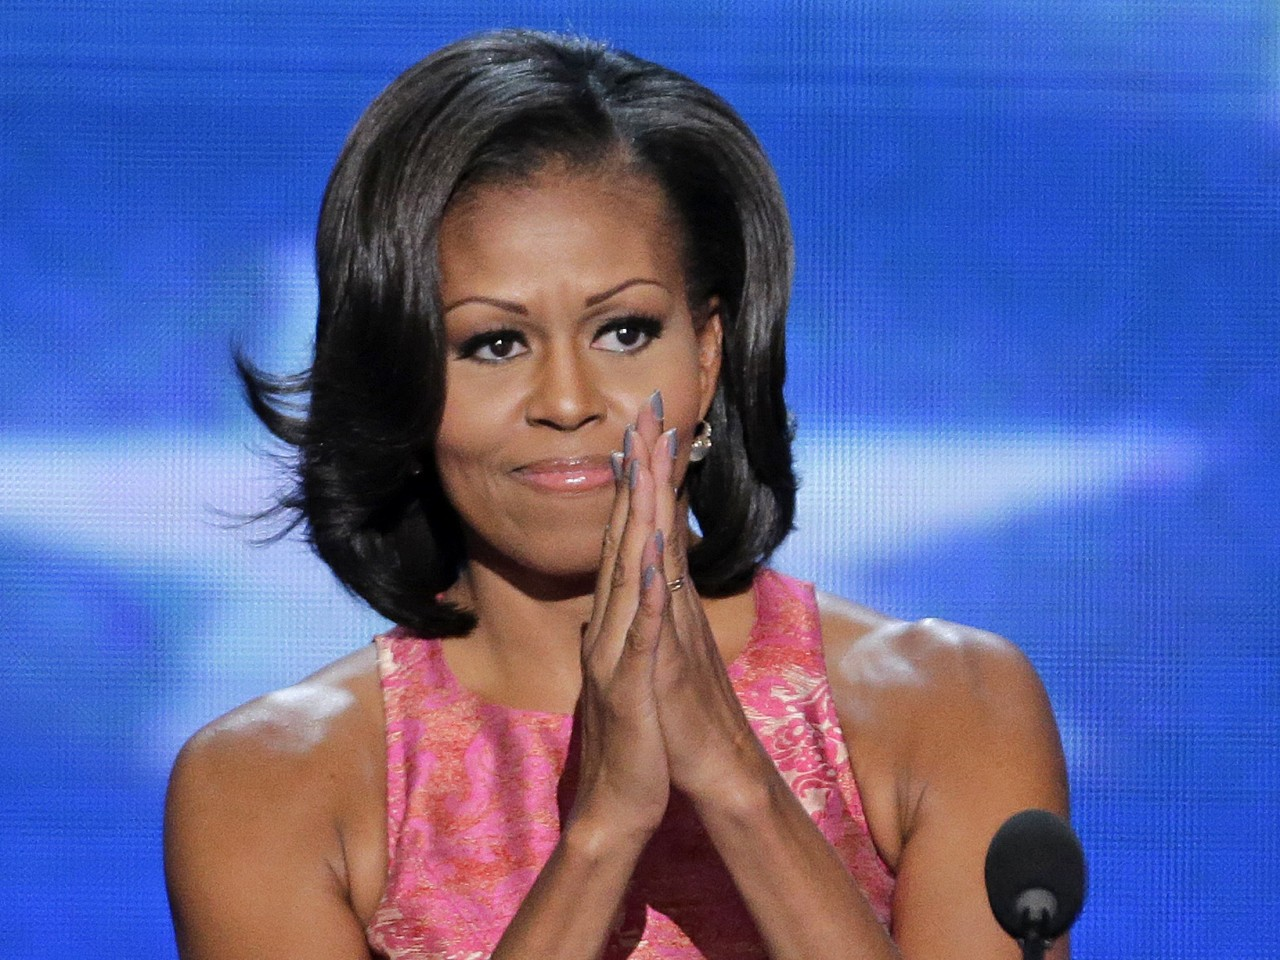 1280x960 - Michelle Obama Wallpapers 21